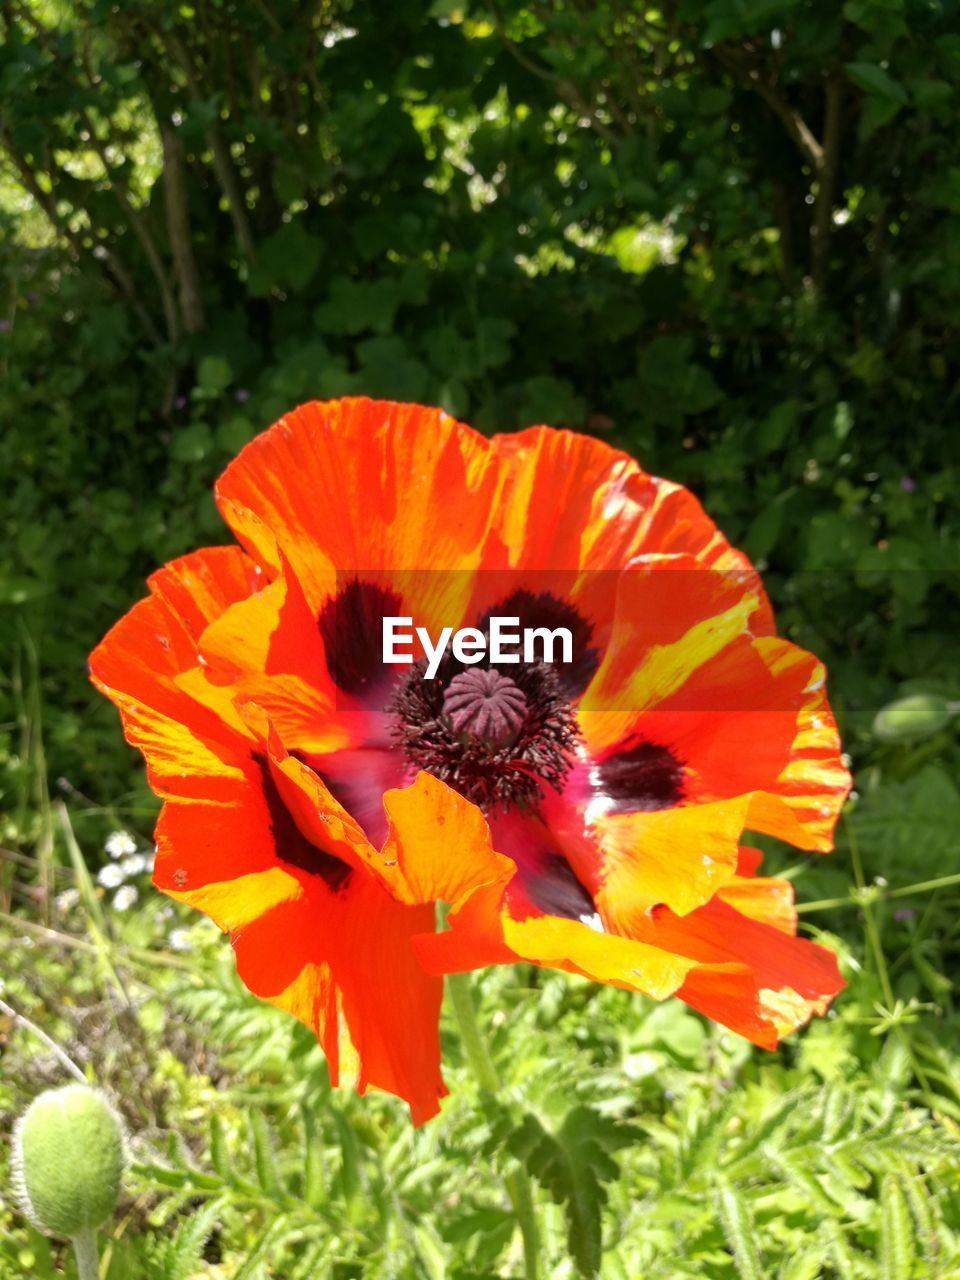 flower, growth, beauty in nature, nature, orange color, petal, freshness, plant, flower head, fragility, outdoors, day, no people, green color, blooming, close-up, poppy, animal themes